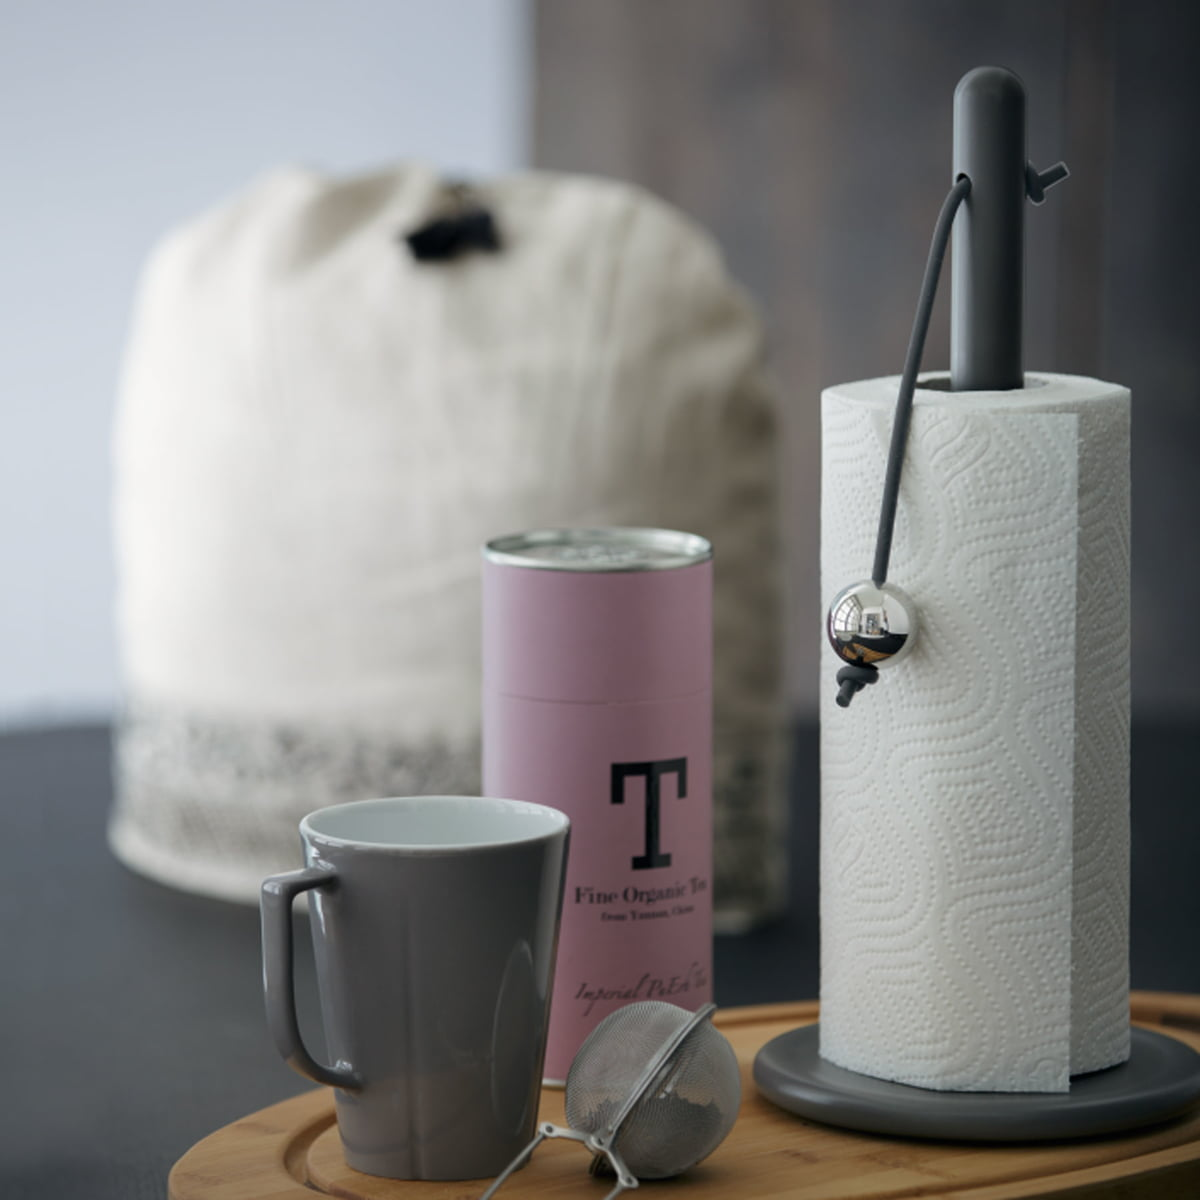 Household Paper Towel Holders Simplify And Beautify The Daily Life